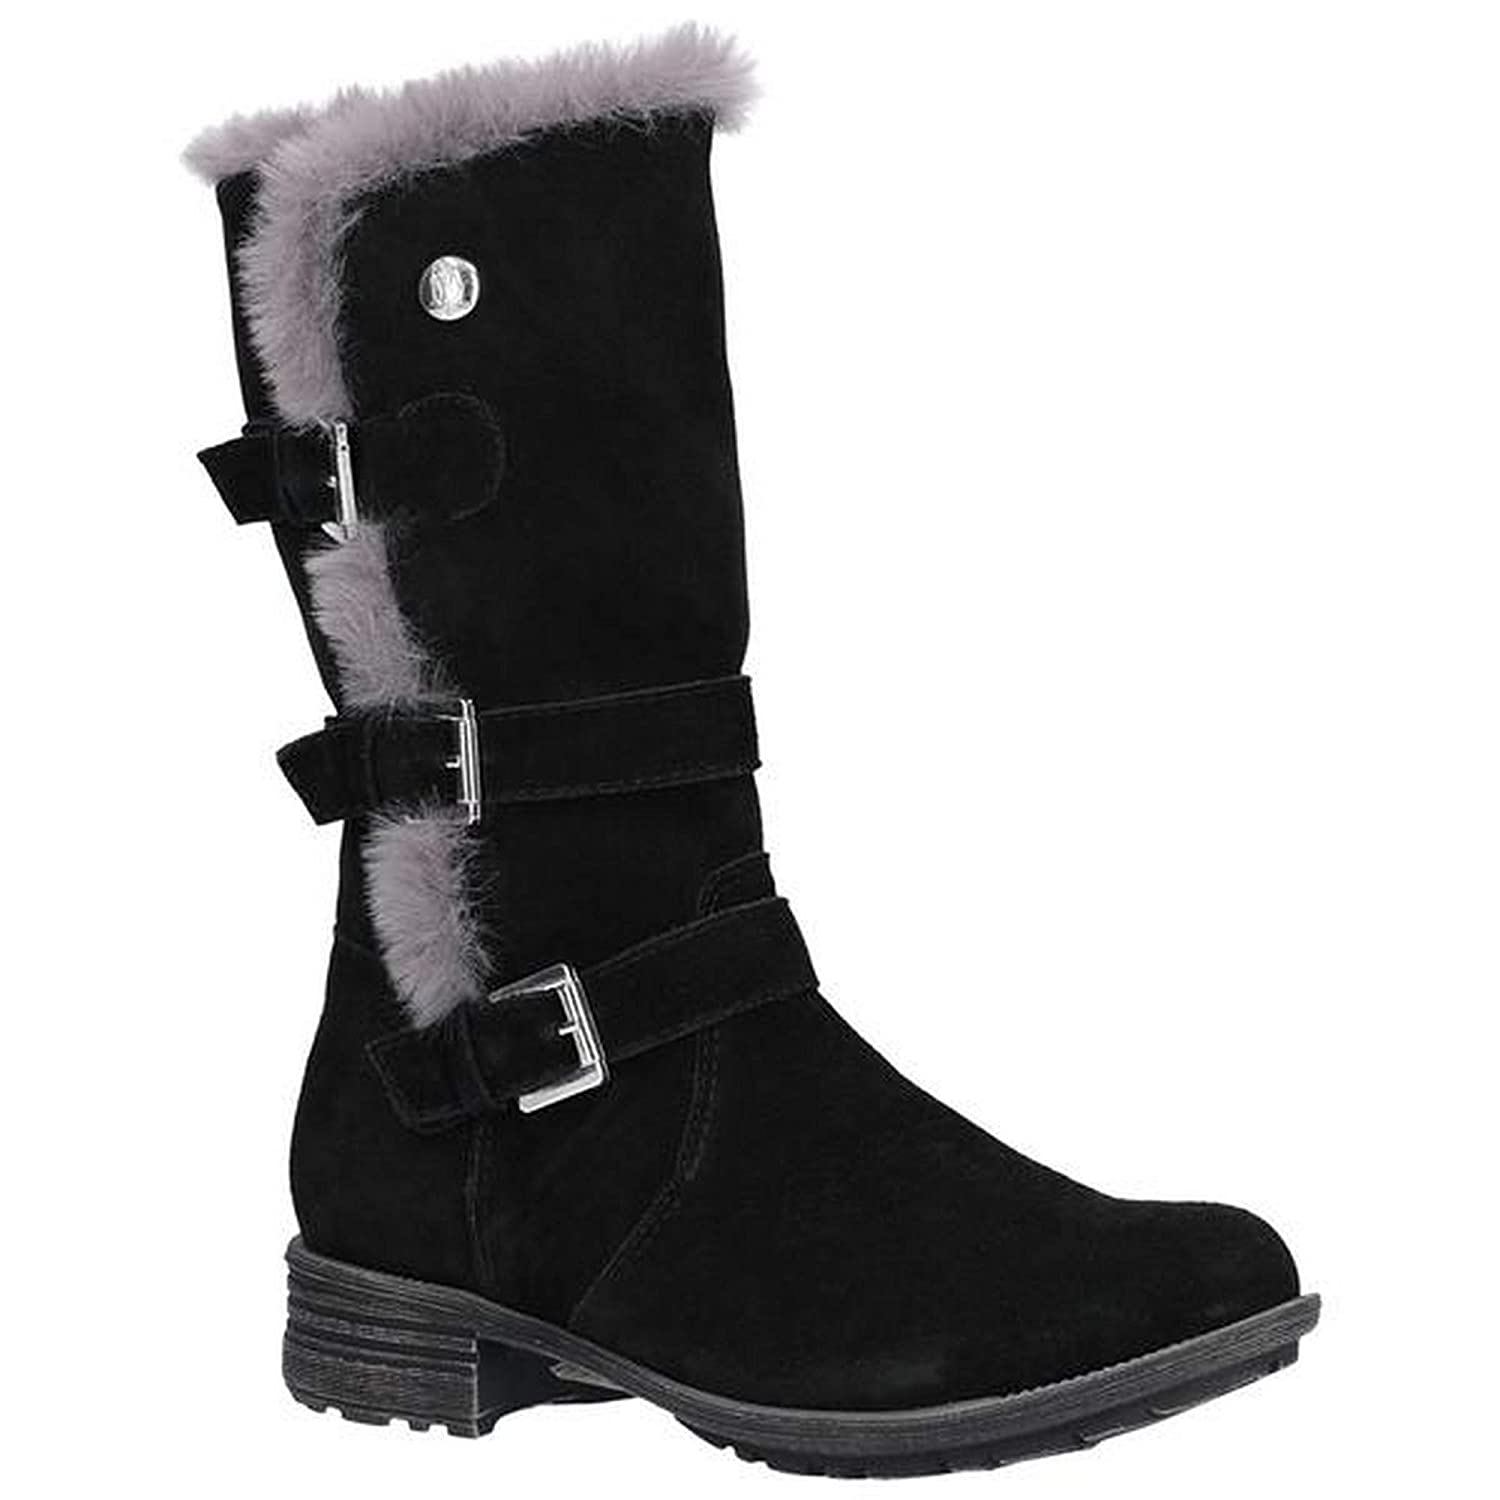 f7242ad178f Hush Puppies Womens Ladies Saluki Buckle Boots (6 UK) (Black)   Amazon.co.uk  Shoes   Bags